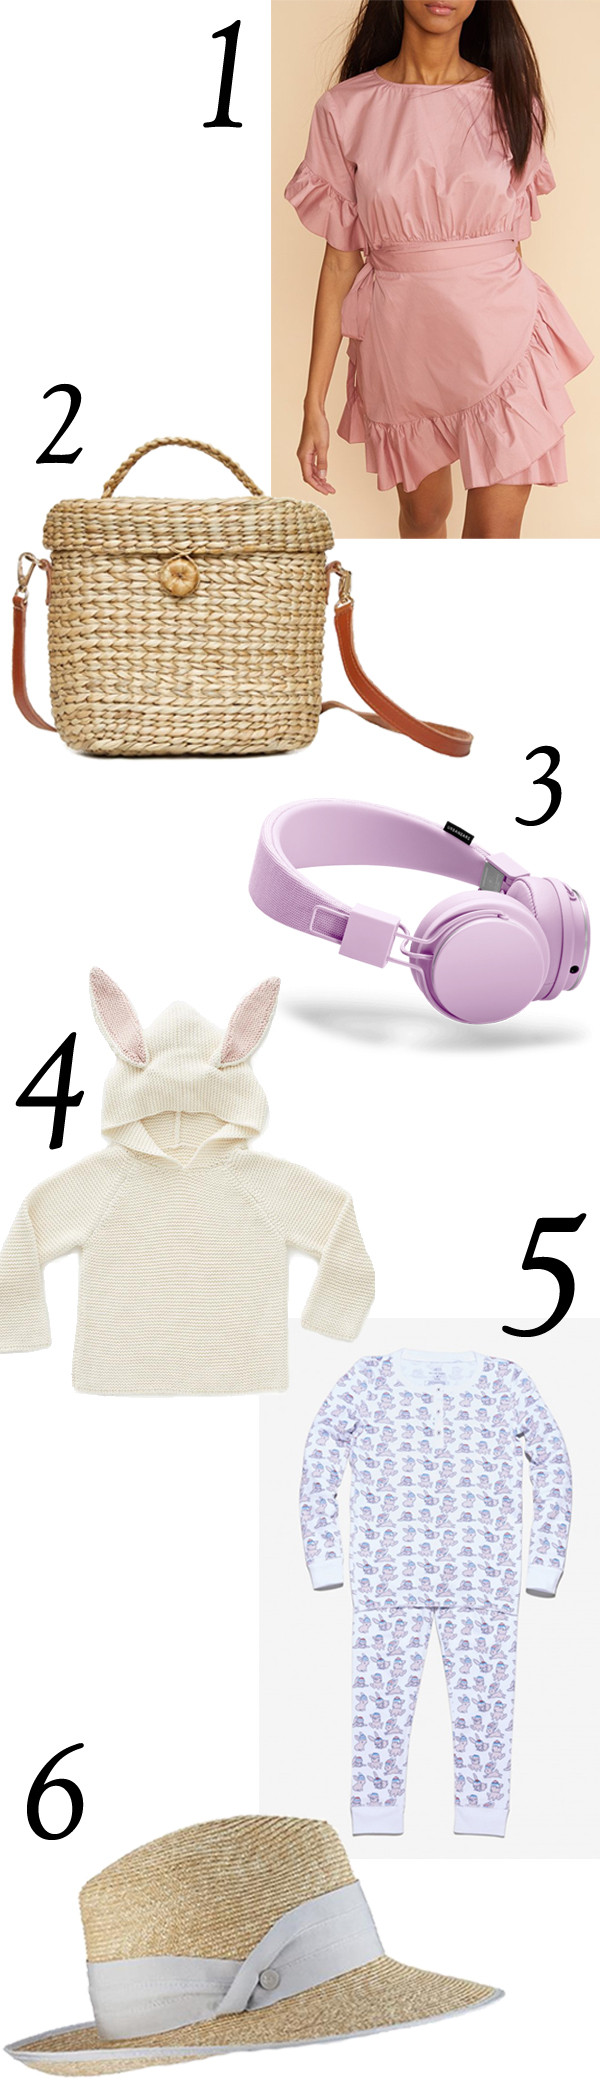 CMSPage_Things We Love | Easter Entertaining_ONE_SIZE_IMAGE_01